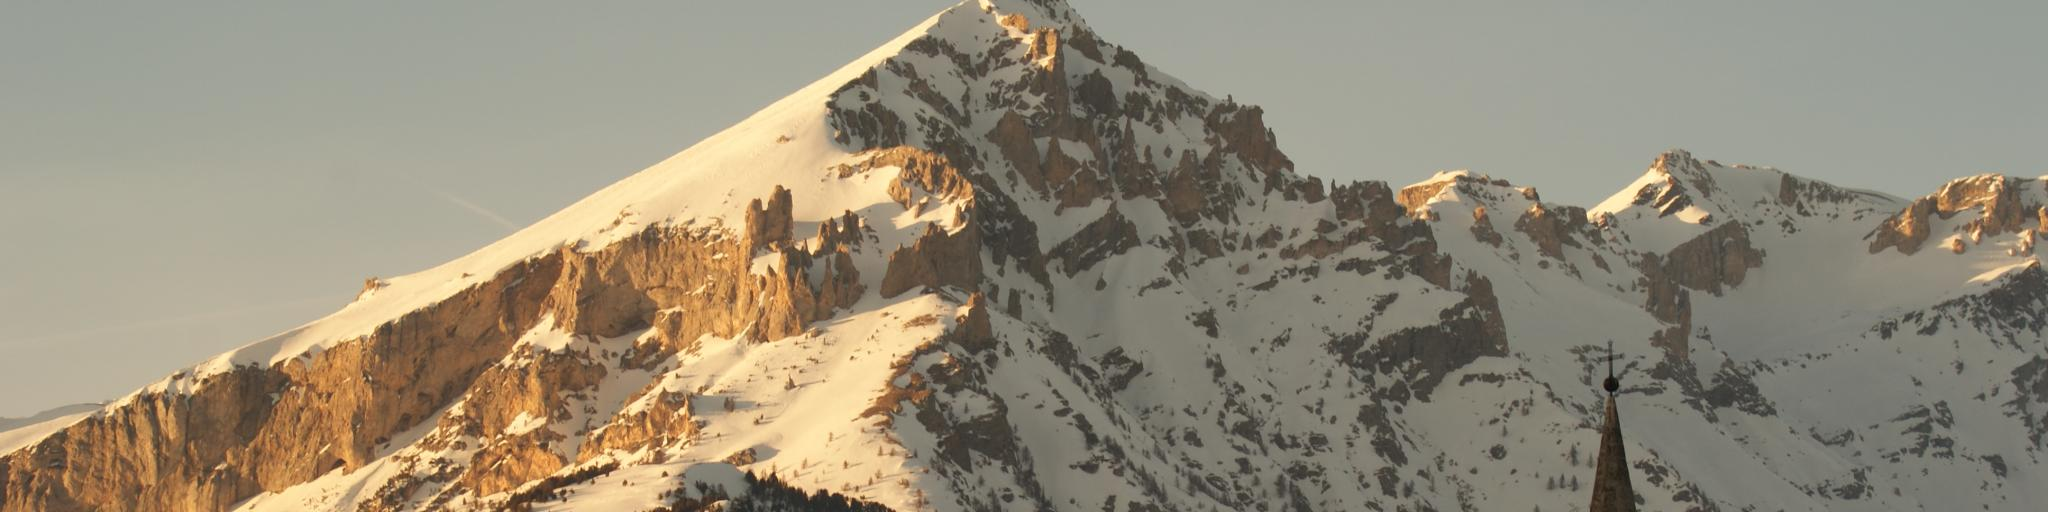 A church steeple in front of snowy mountains in Sauze d'Oulx, Italy